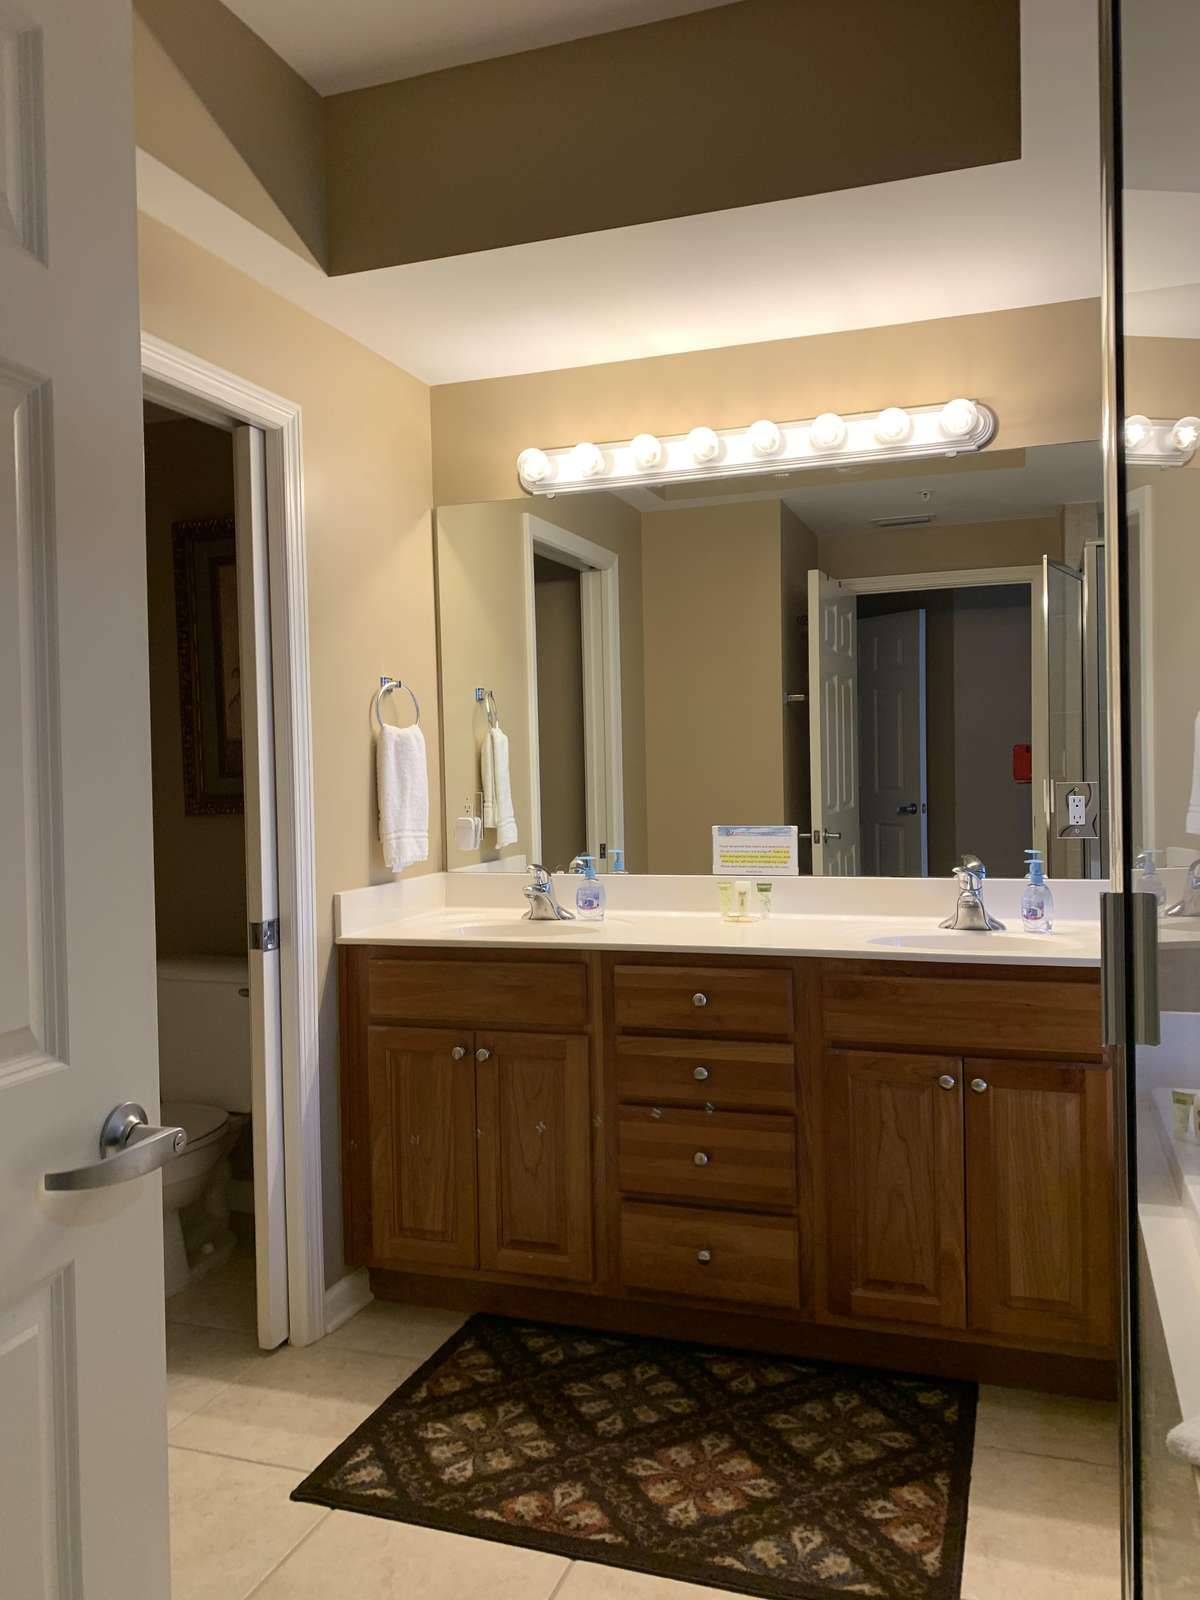 Master bathroom with double sinks and water closet